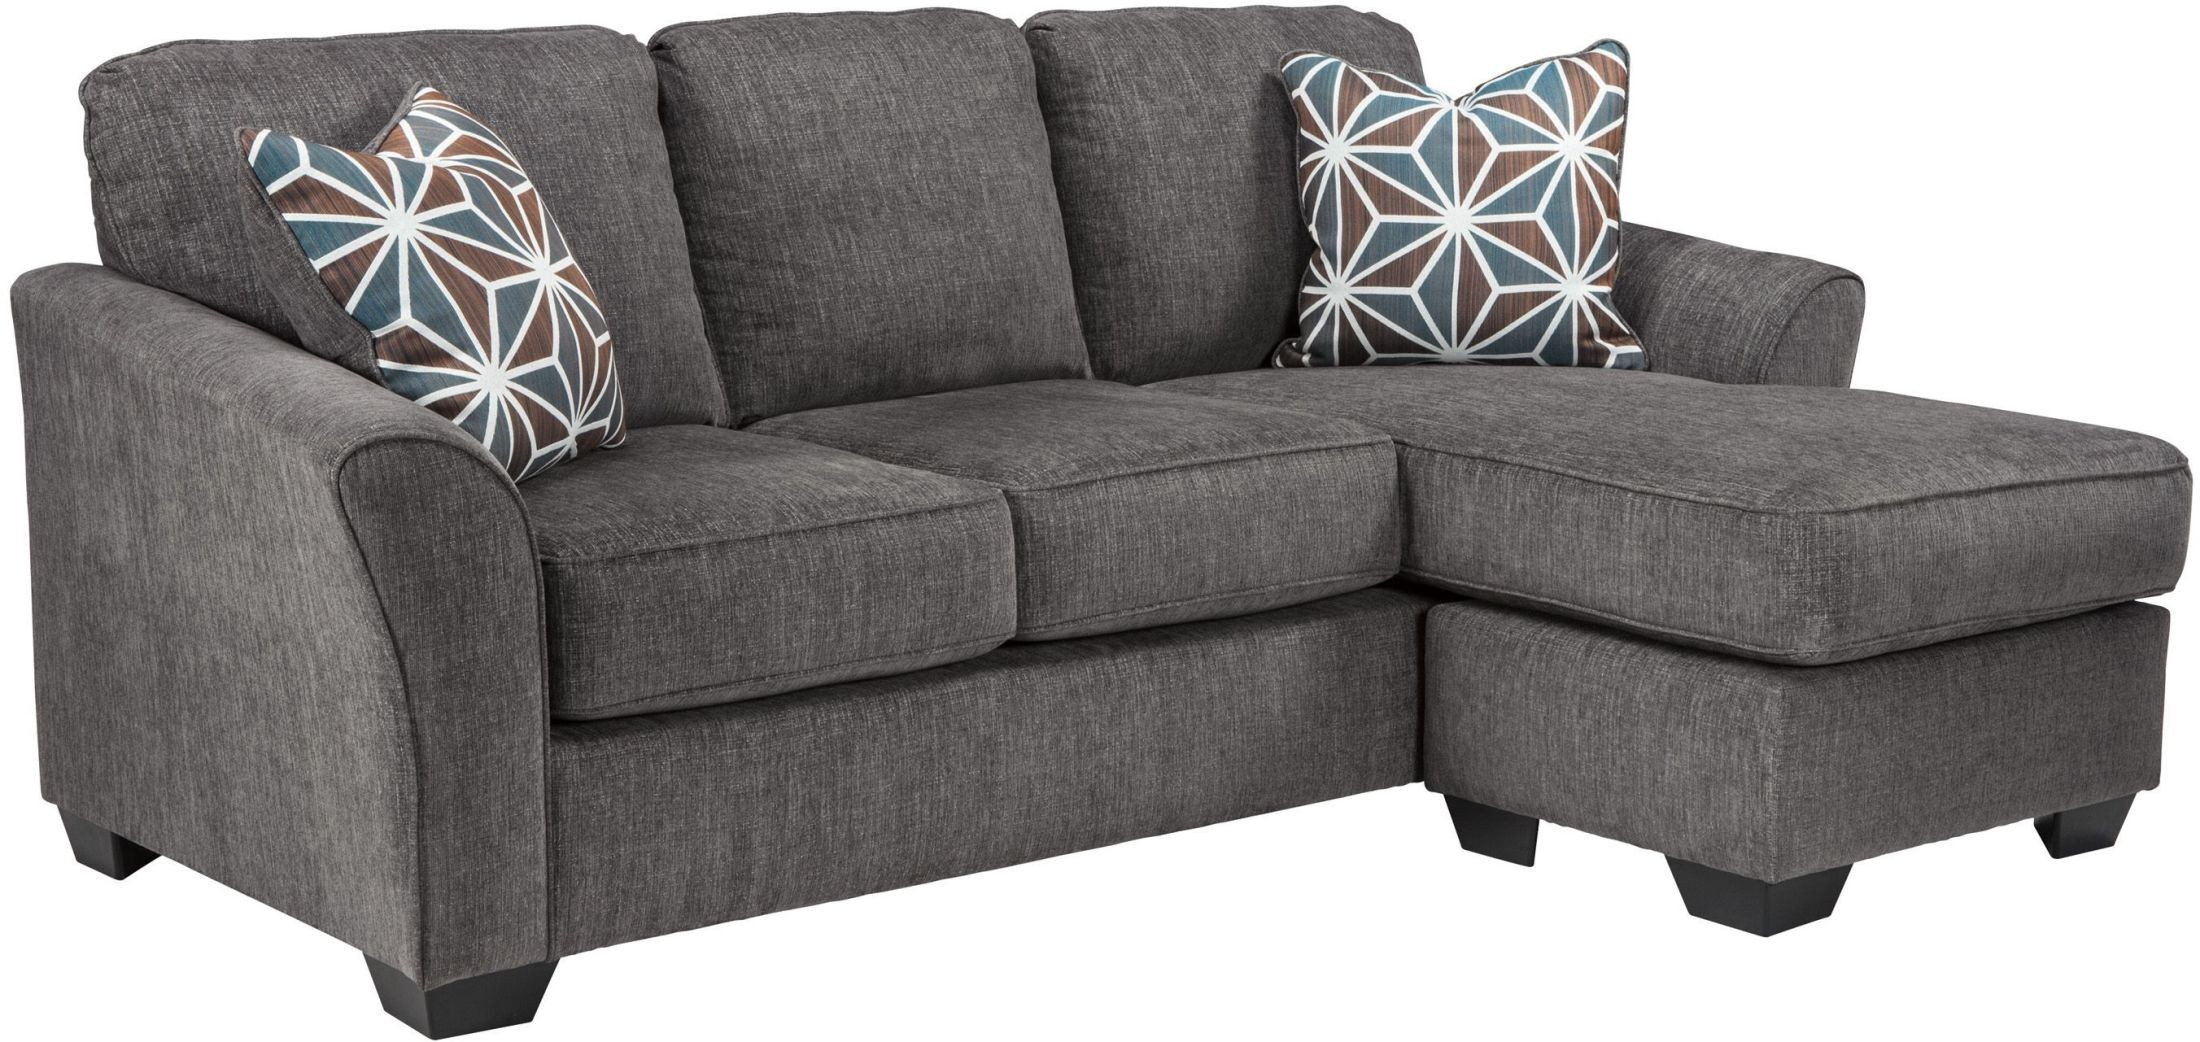 argos sofa in a box review best leather sofas melbourne ashley brise slate chaise dallas tx living room